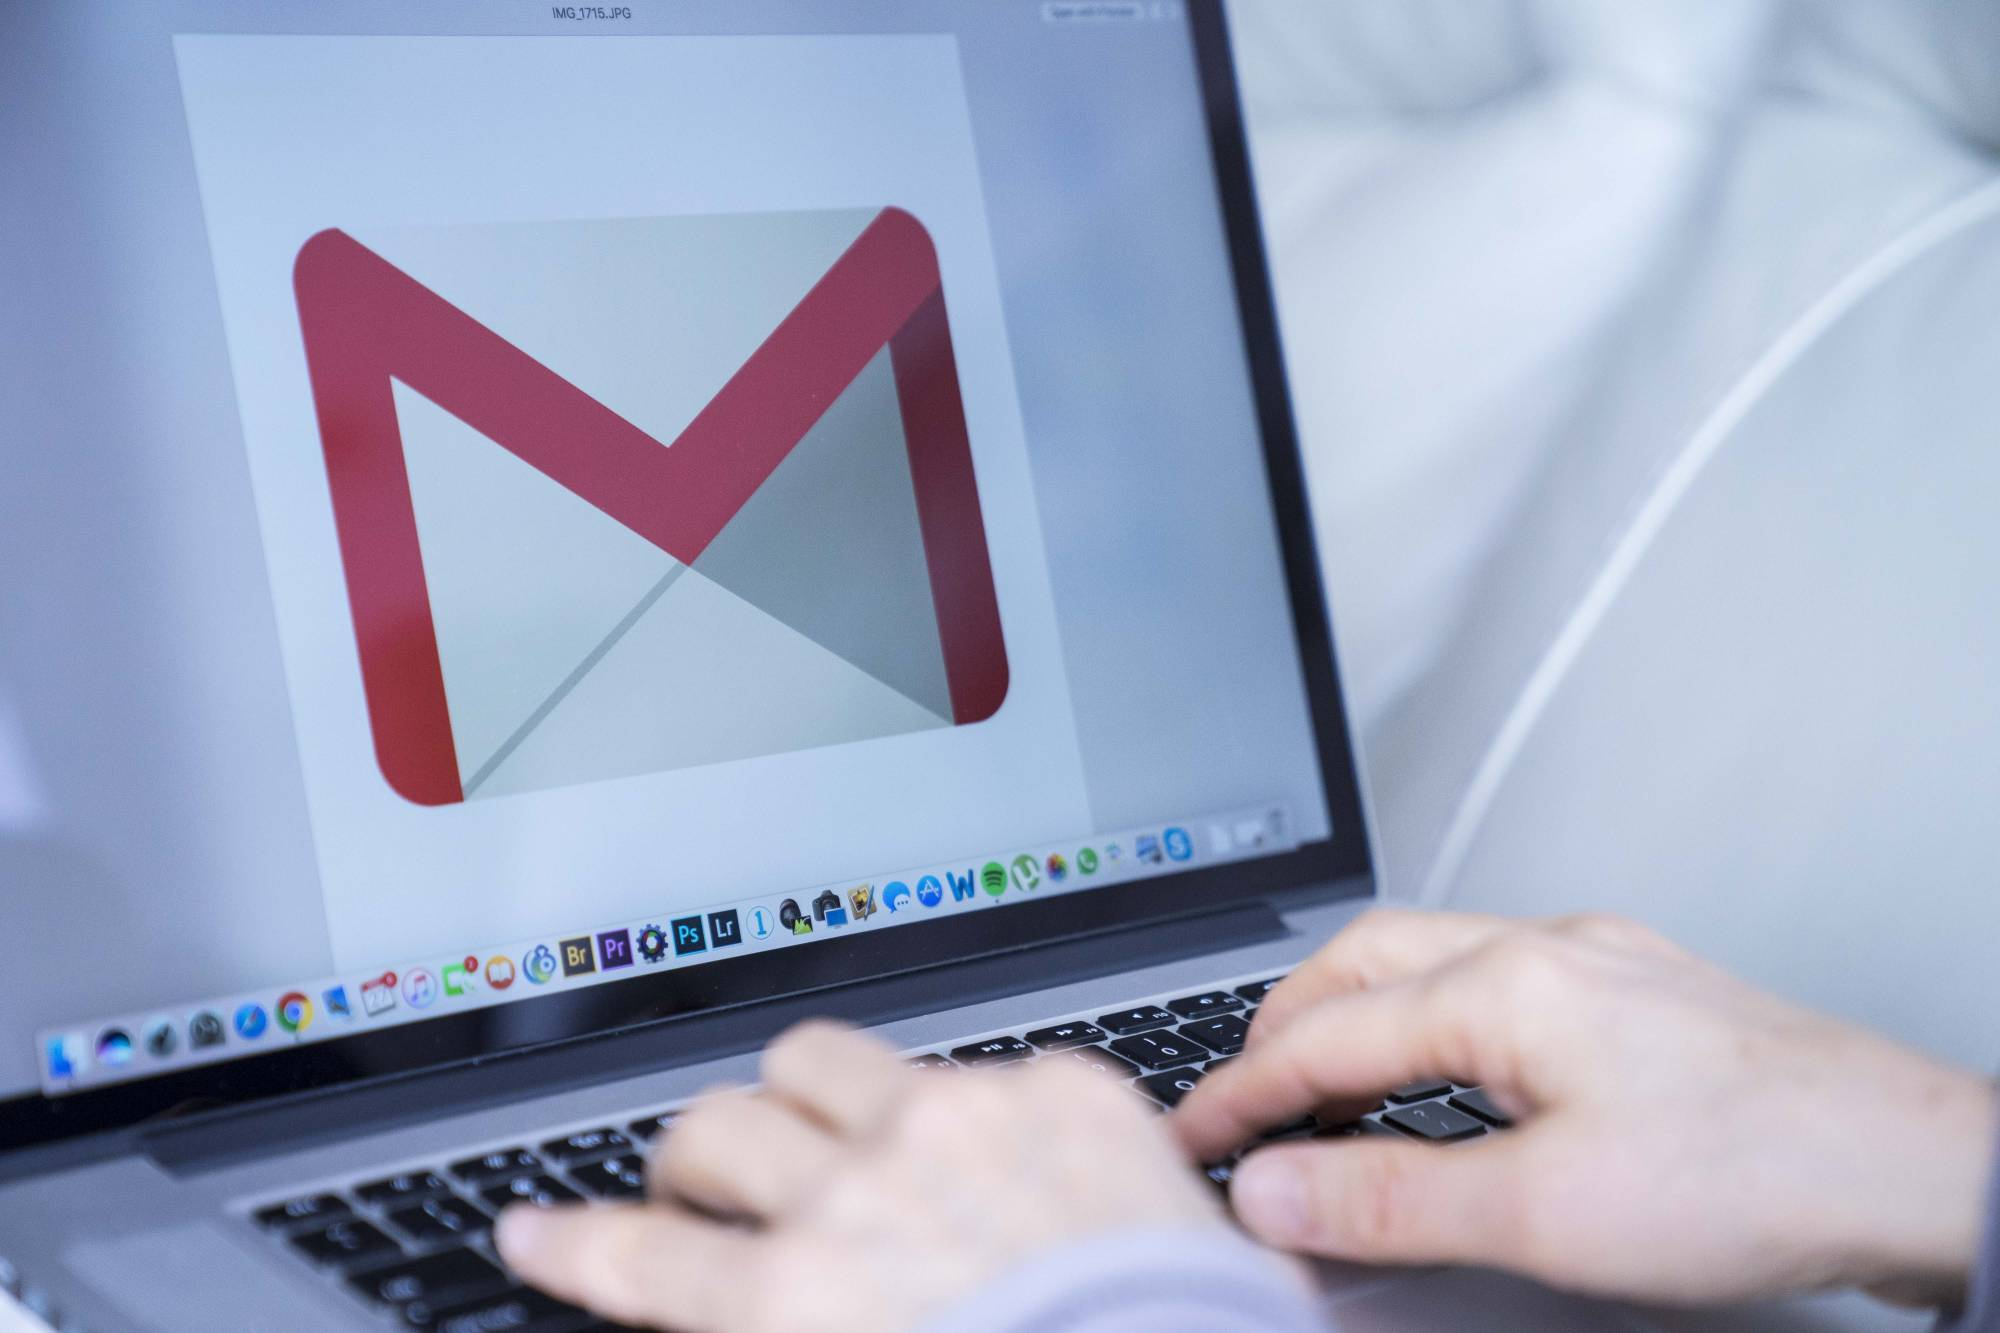 Google to kill its Inbox app in favor of its Gmail app.